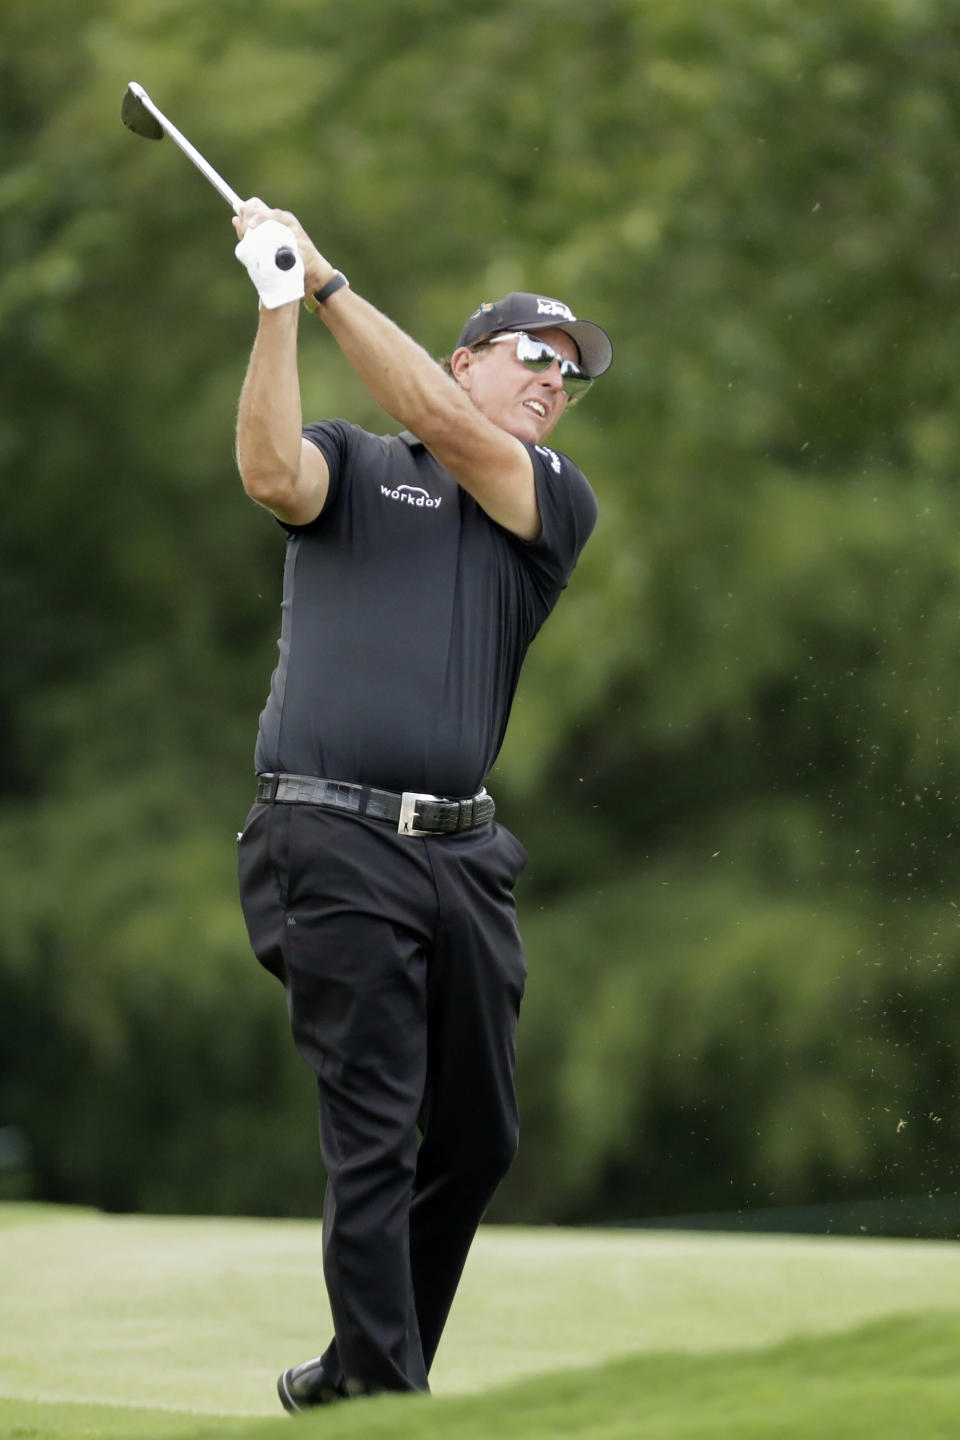 Phil Mickelson hits form the fairway on the first hole during the final round of the World Golf Championship-FedEx St. Jude Invitational Sunday, Aug. 2, 2020, in Memphis, Tenn. (AP Photo/Mark Humphrey)